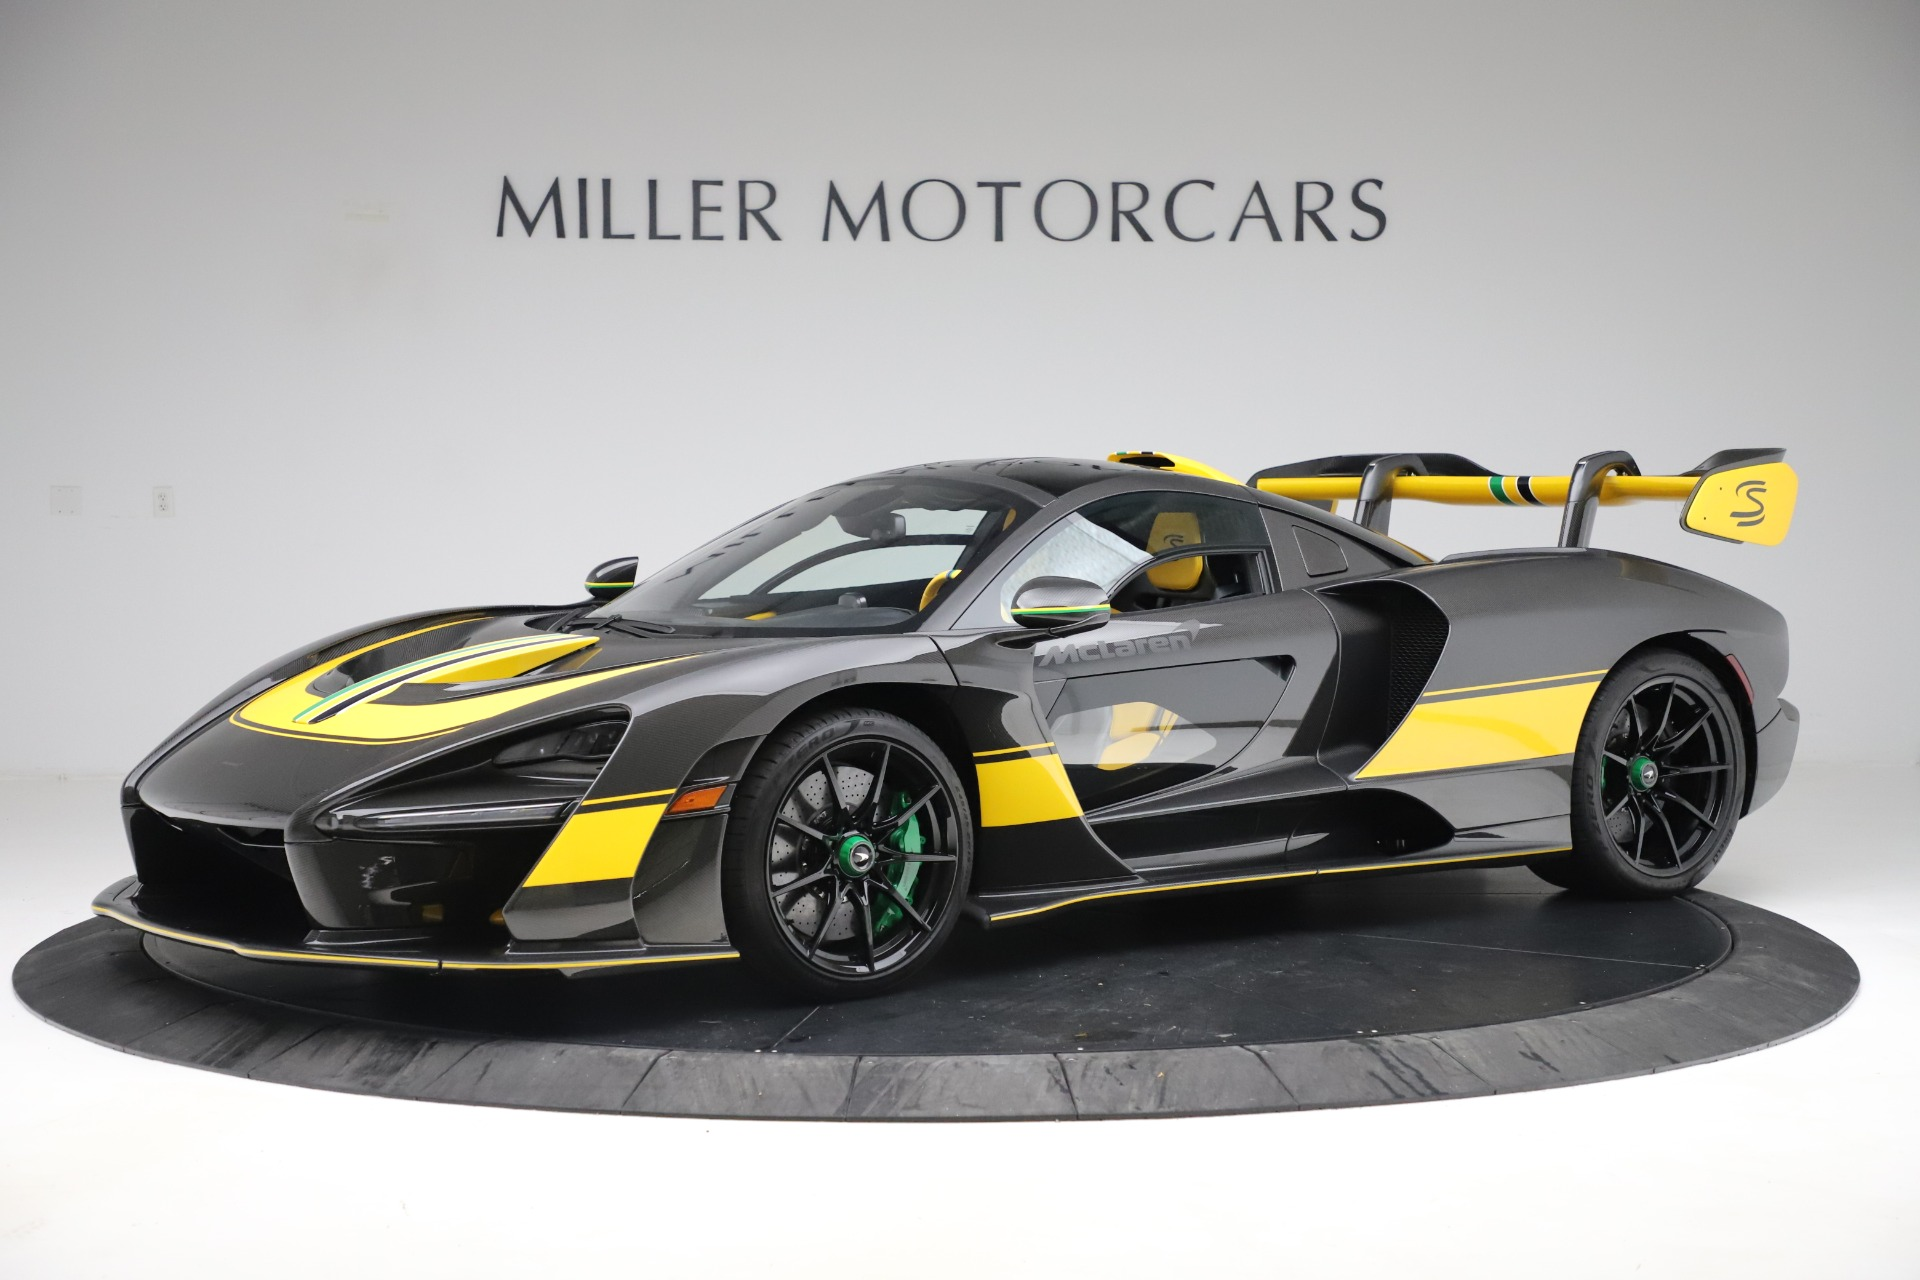 Used 2019 McLaren Senna for sale Sold at Bugatti of Greenwich in Greenwich CT 06830 1